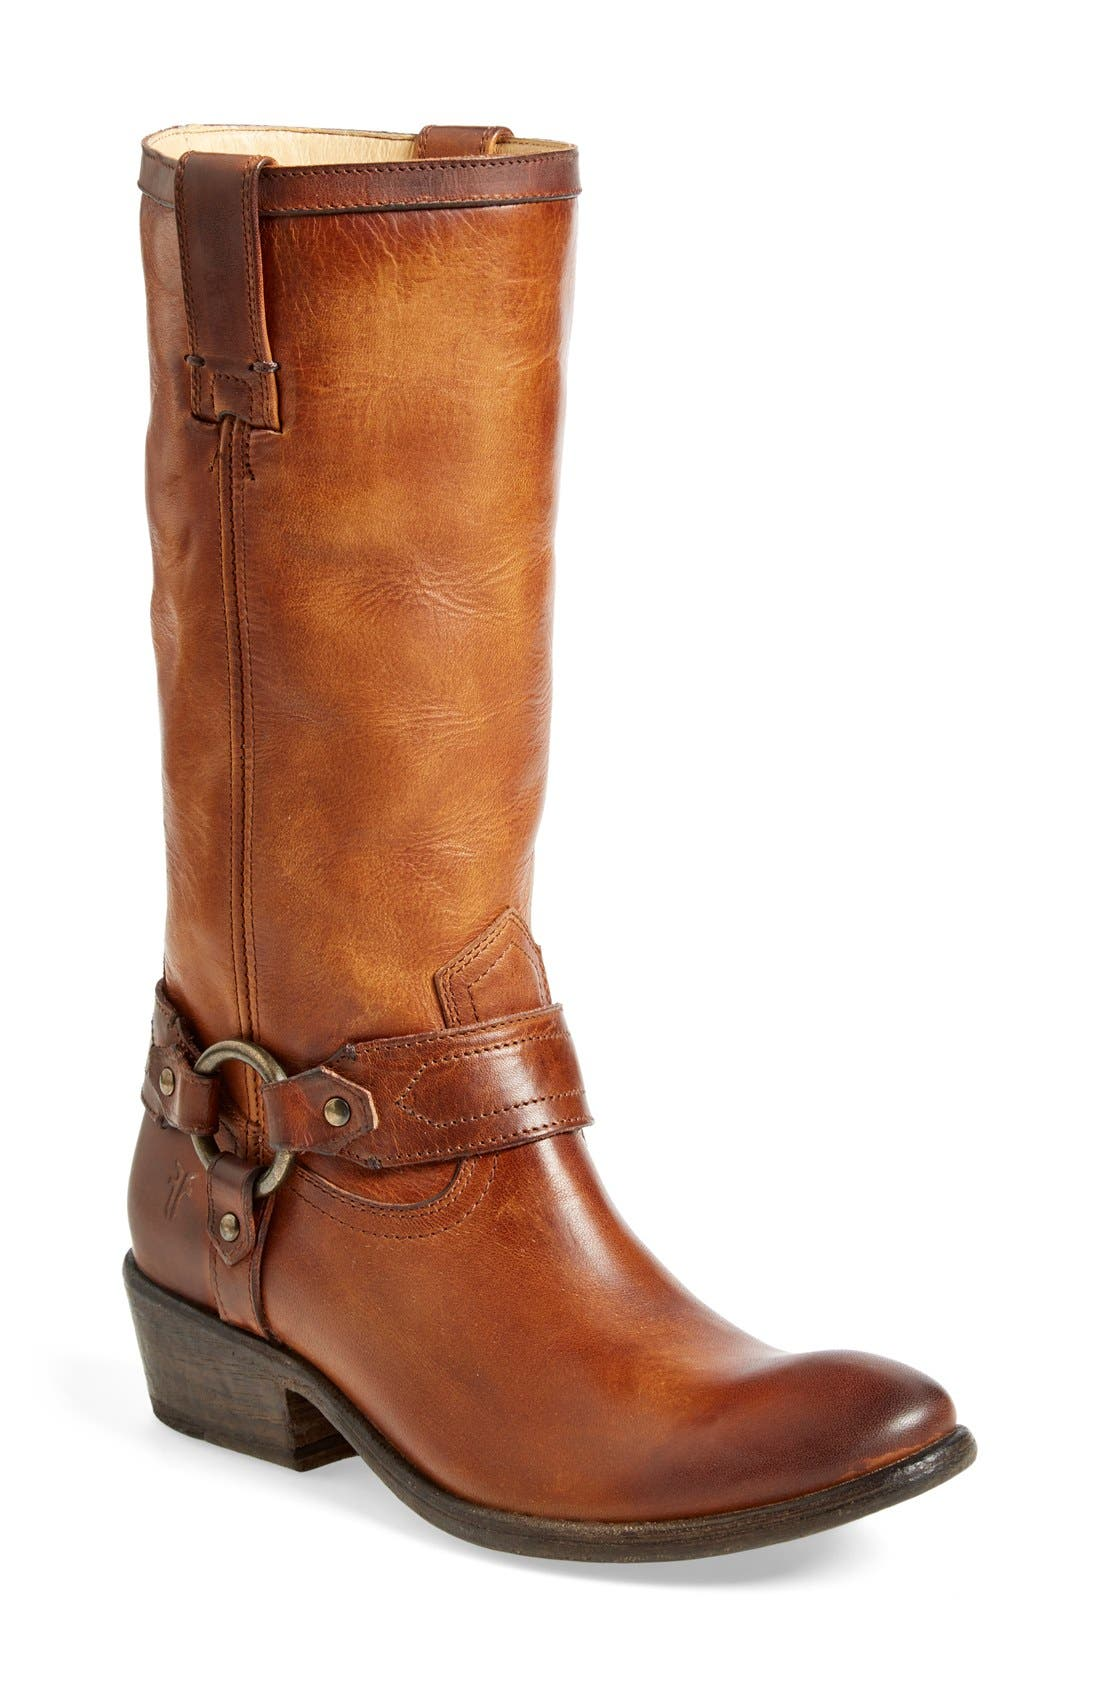 'Carson Harness' Western Mid Calf Riding Boot,                         Main,                         color, Cognac Leather